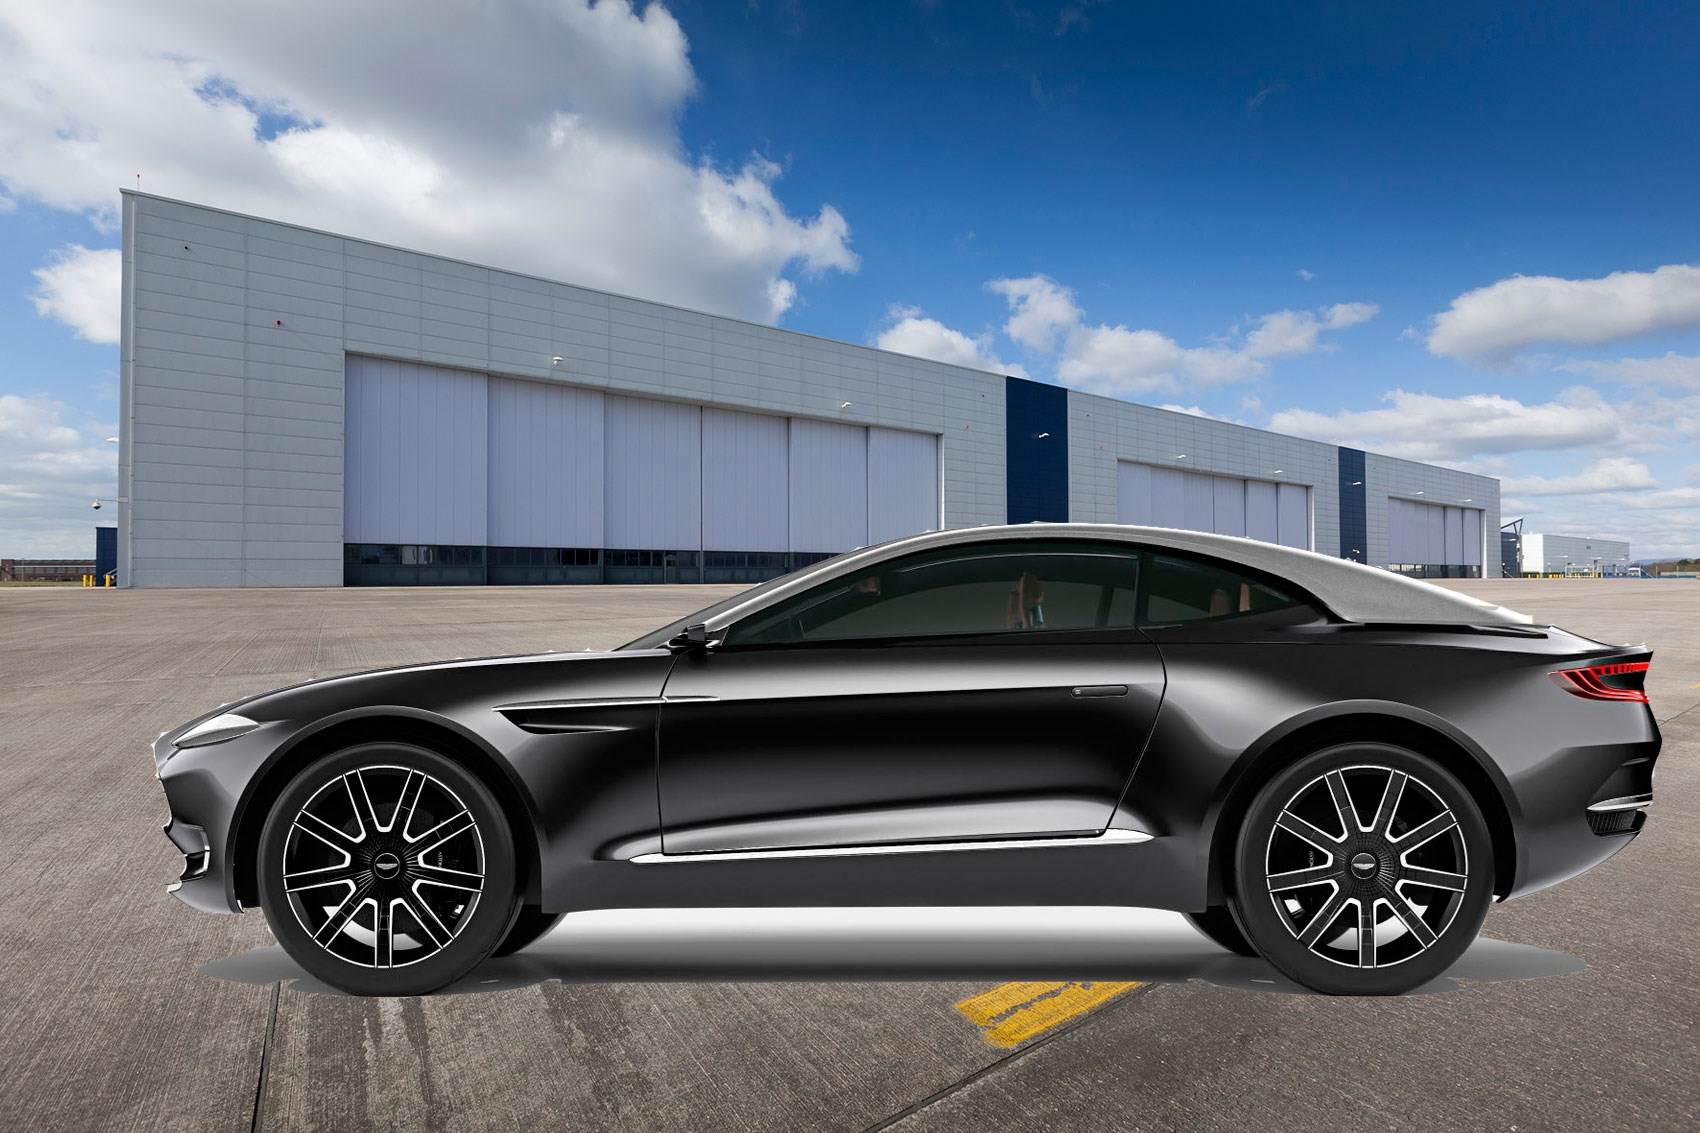 Aston Martin To Build New Factory In Wales For S DBX Crossover - Build your own aston martin